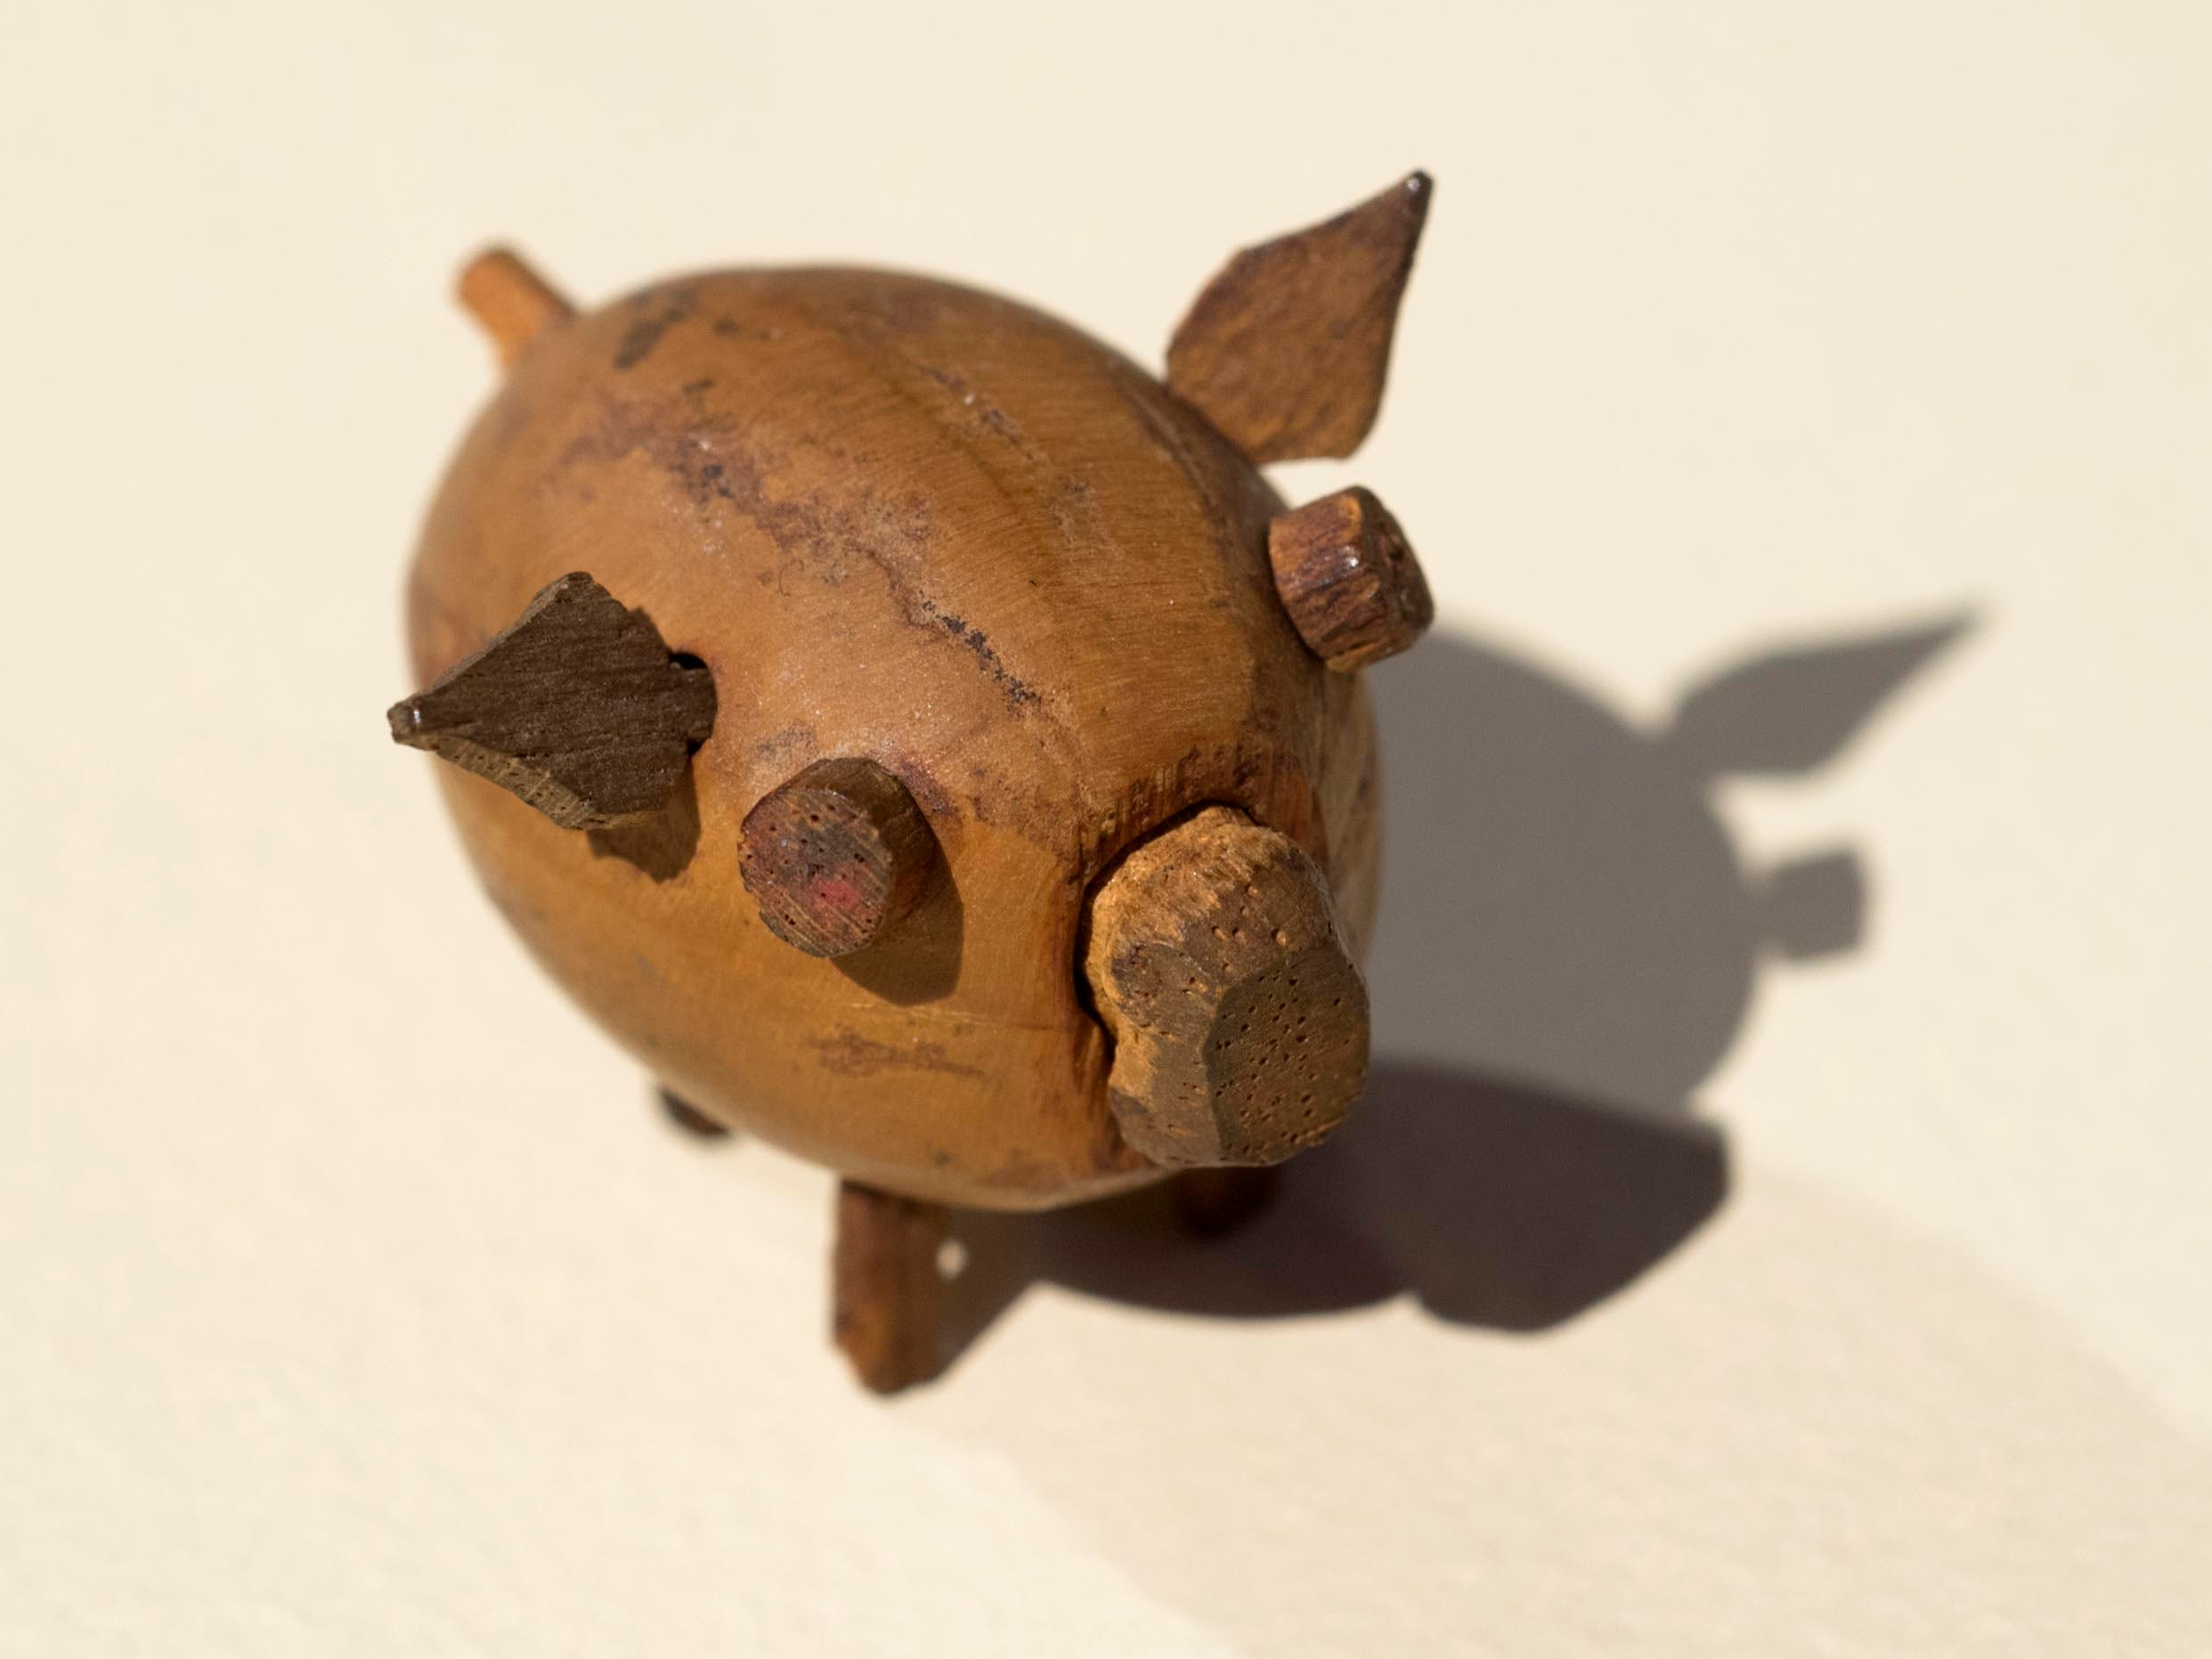 A Brushy Mountain State Penitentiary prisoner hollowed out an acorn to carve this tiny pig with a wooden snout. Prisoner-made items were sold in neighboring towns to make cigarette money. This pig cost 50 cents. It was a toy. Remove the wooden snout, capture a fly, replace the snout. So long as the fly buzzed around, the pig's tiny ears wiggled.